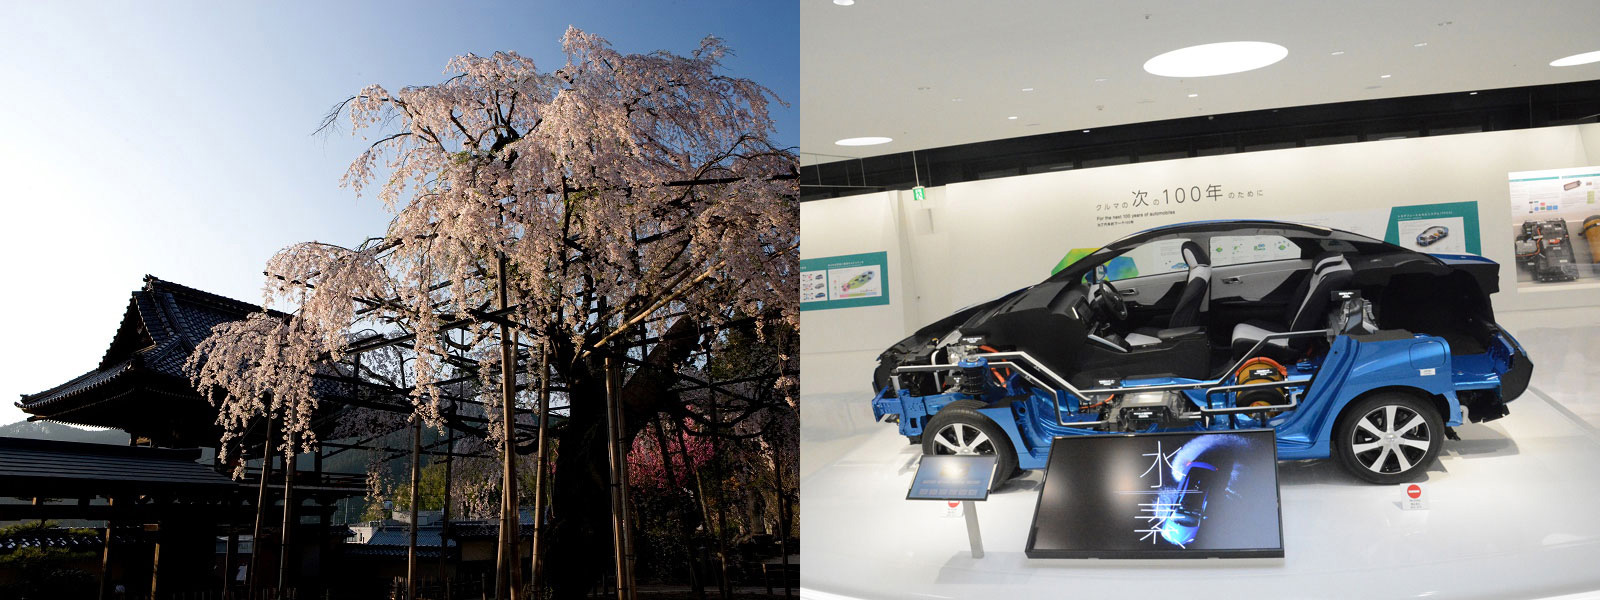 Toyota City, Traditions and Technology